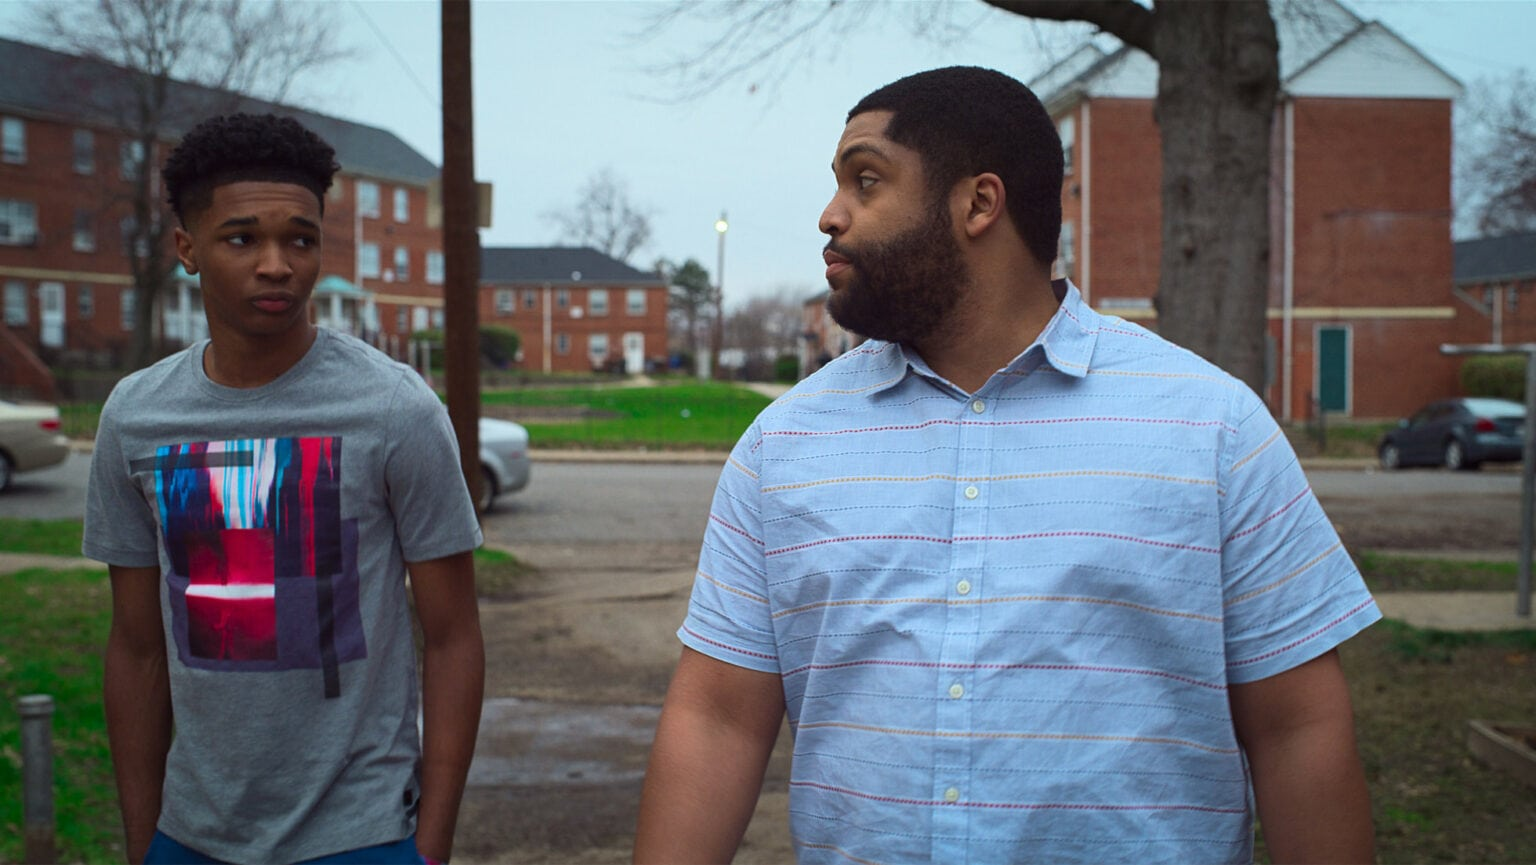 Isaiah Hill and O'Shea Jackson Jr. in Swagger, premiering globally October 29, 2021 on Apple TV+.